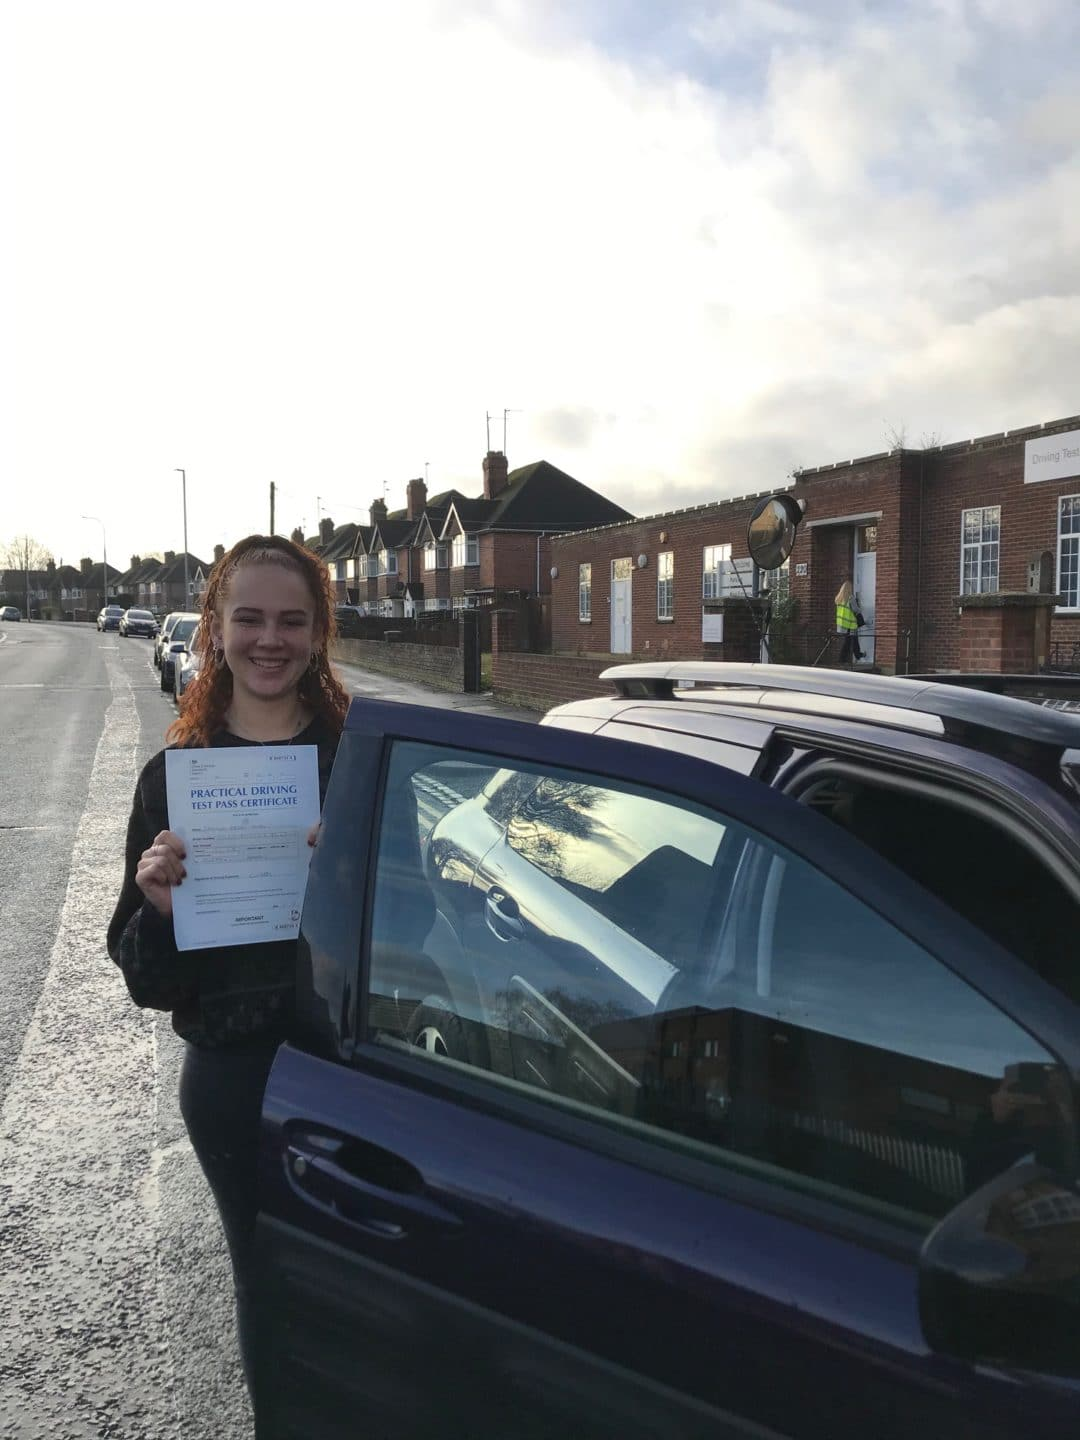 Zhanaye F – Passed first time on 19th December 2019